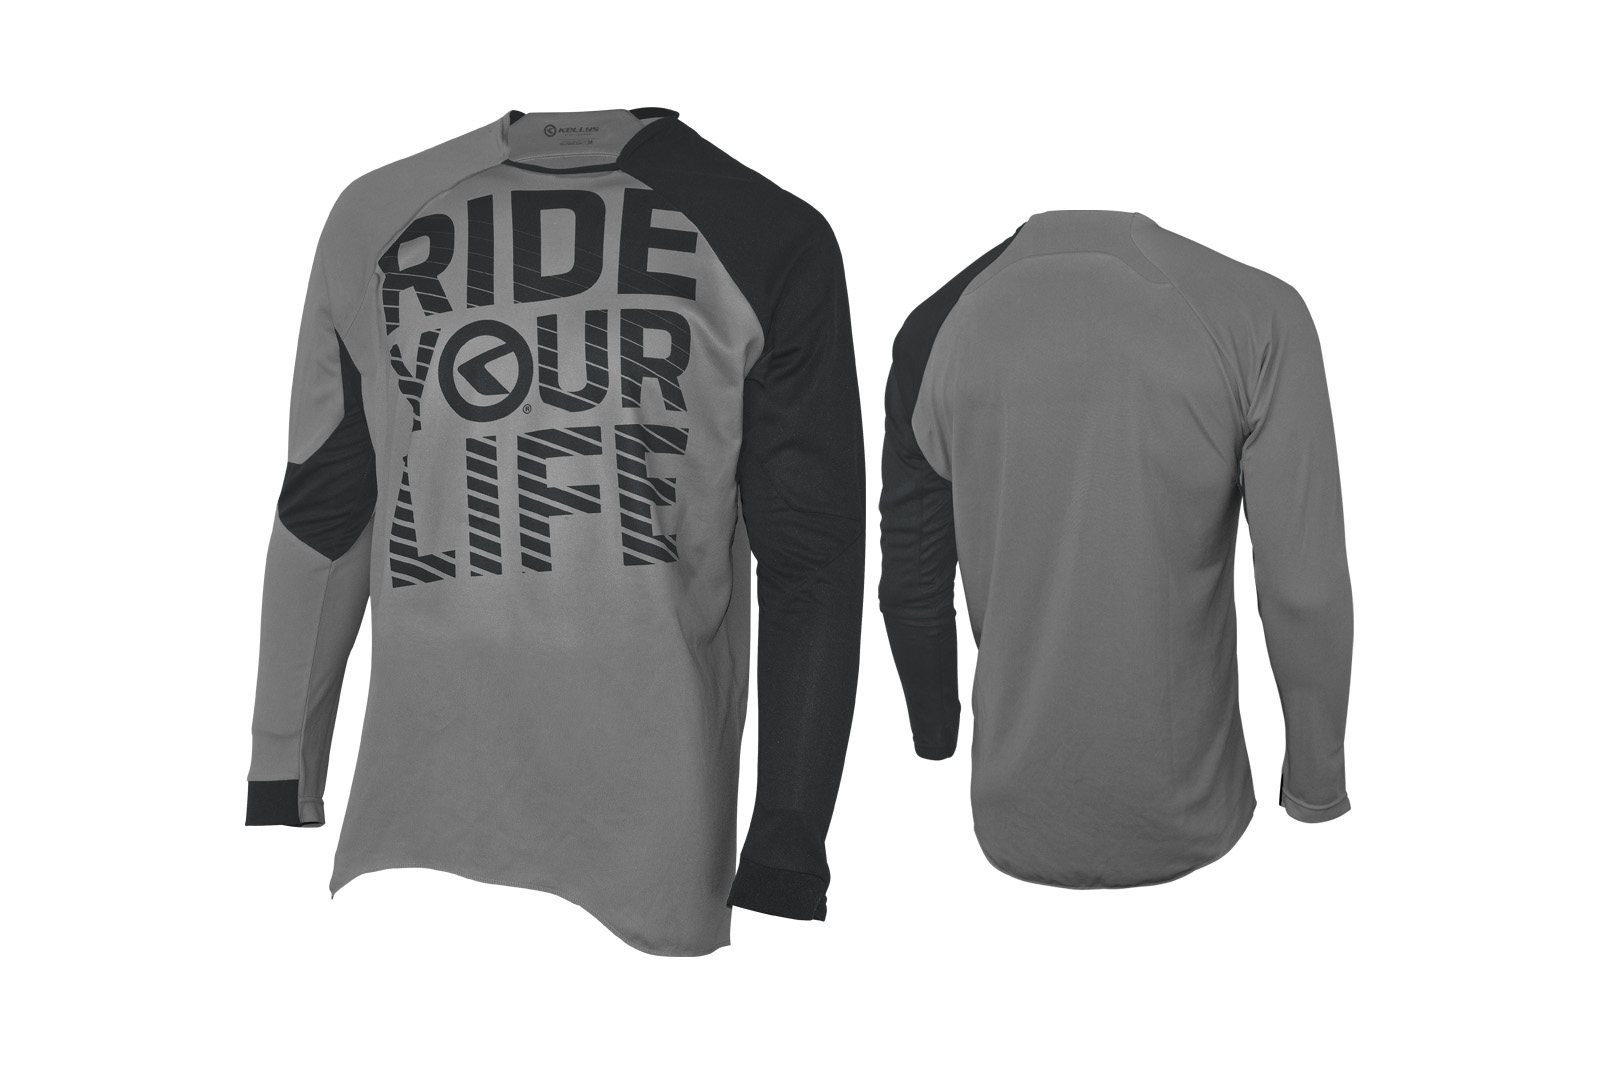 Langarmtrikot KELLYS RIDE YOUR LIFE grey - M - Langarmtrikot KELLYS RIDE YOUR LIFE grey - M